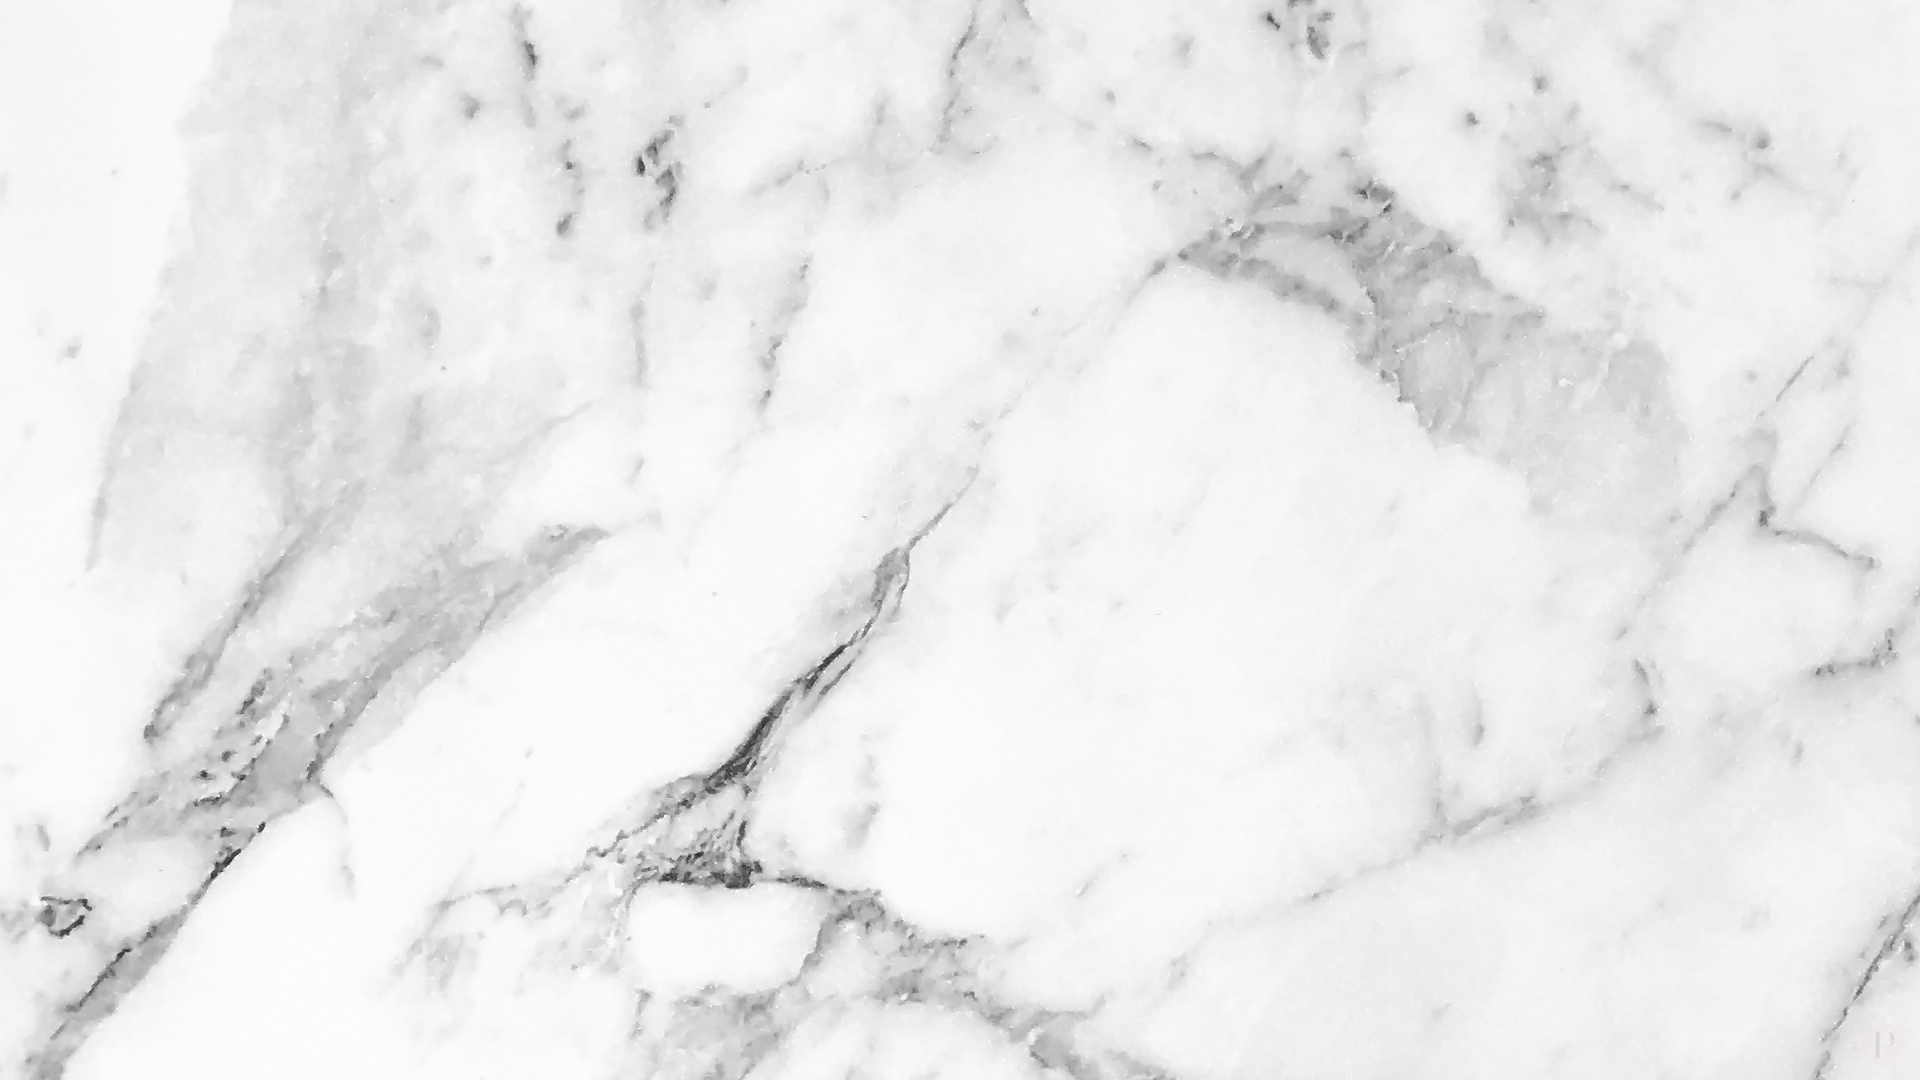 Marble Wallpaper Designs – Uses Marble to Create a Wonderful Wallcovering Design